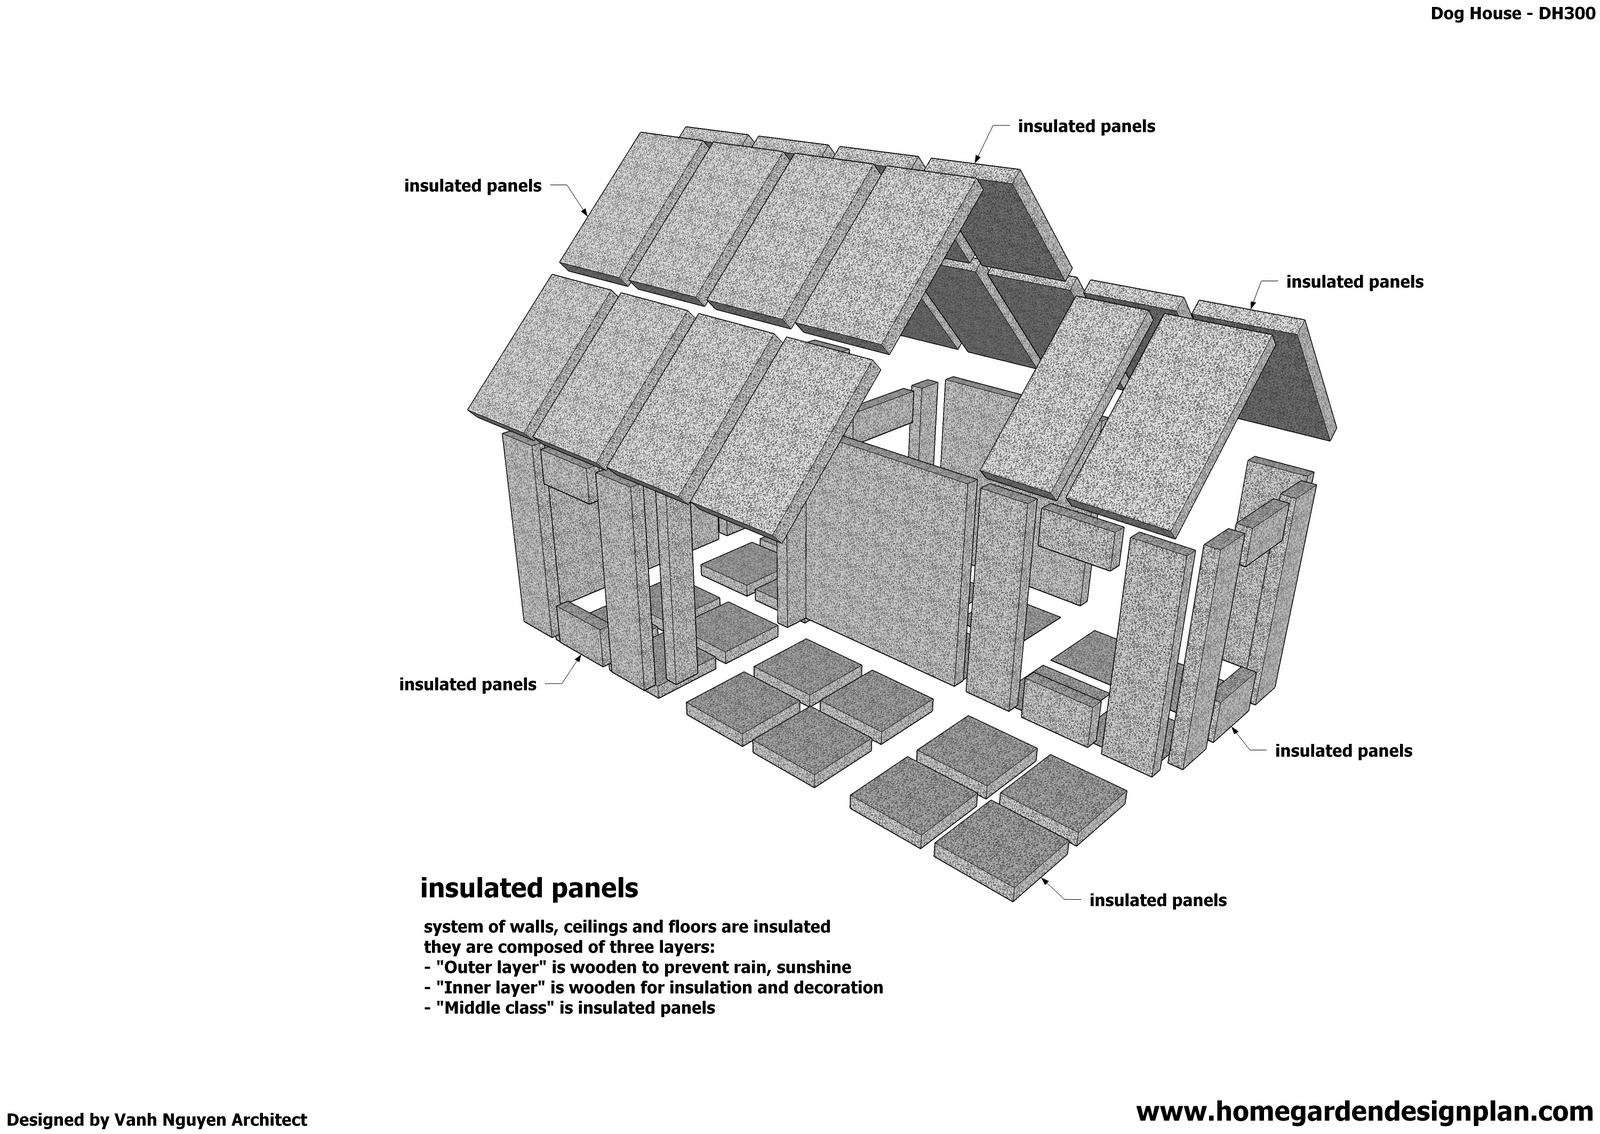 Simple Dog House Blueprints Dh300 dog house plans free